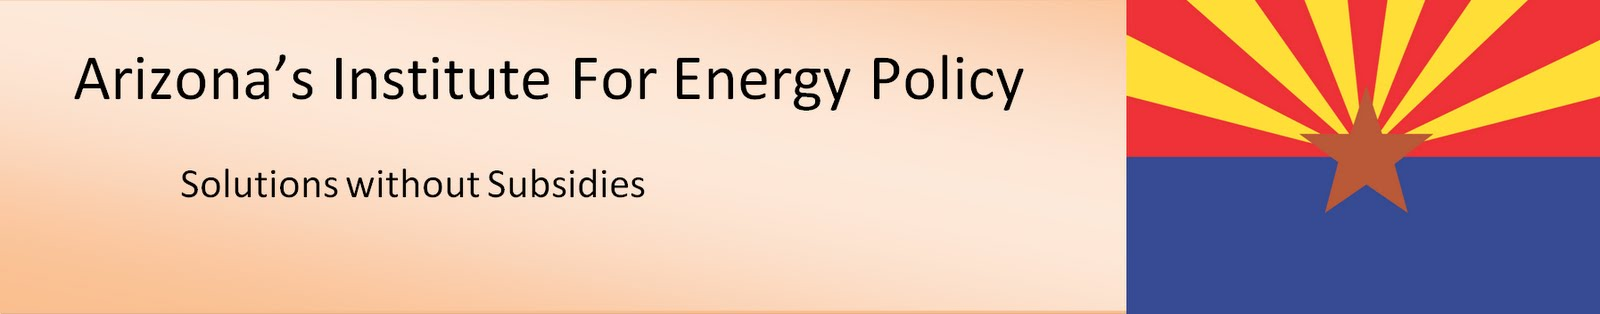 Arizona's Institute for Energy Policy - Blog